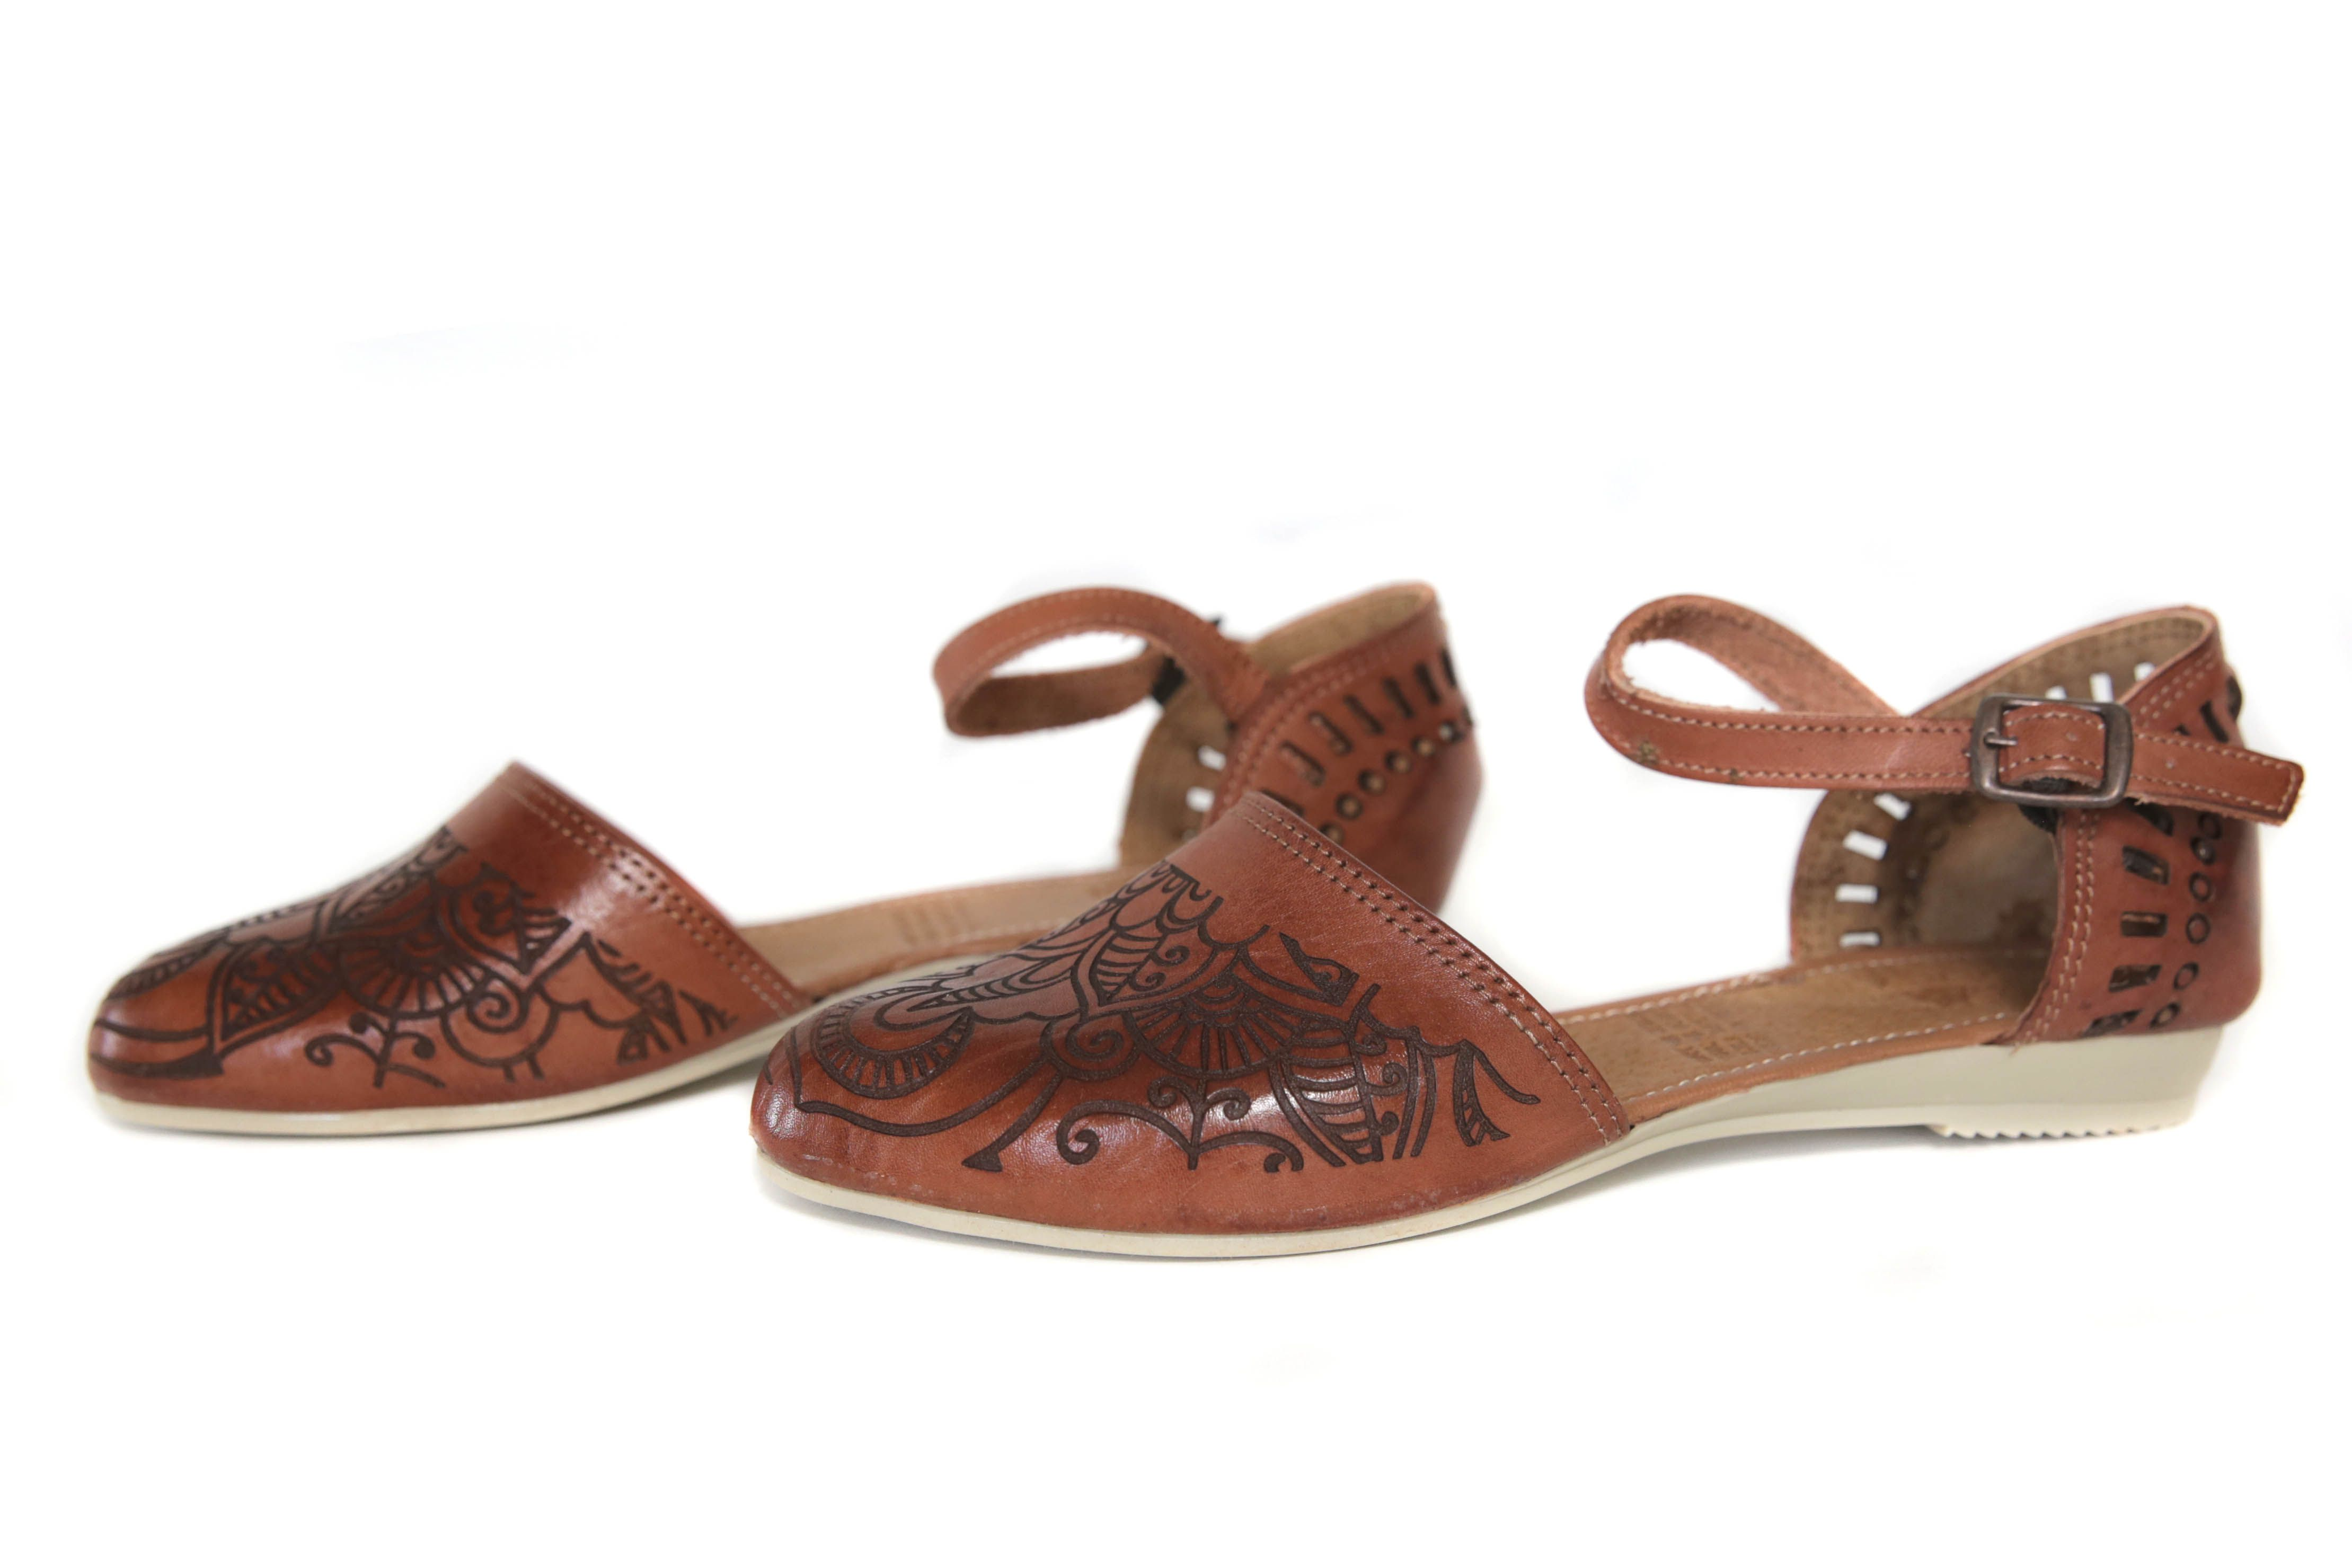 0784098a76b3 Women s Huarache Sandals - Niebla Chedron These Mexican Huarache Sandals  are the type of huaraches that you find the local